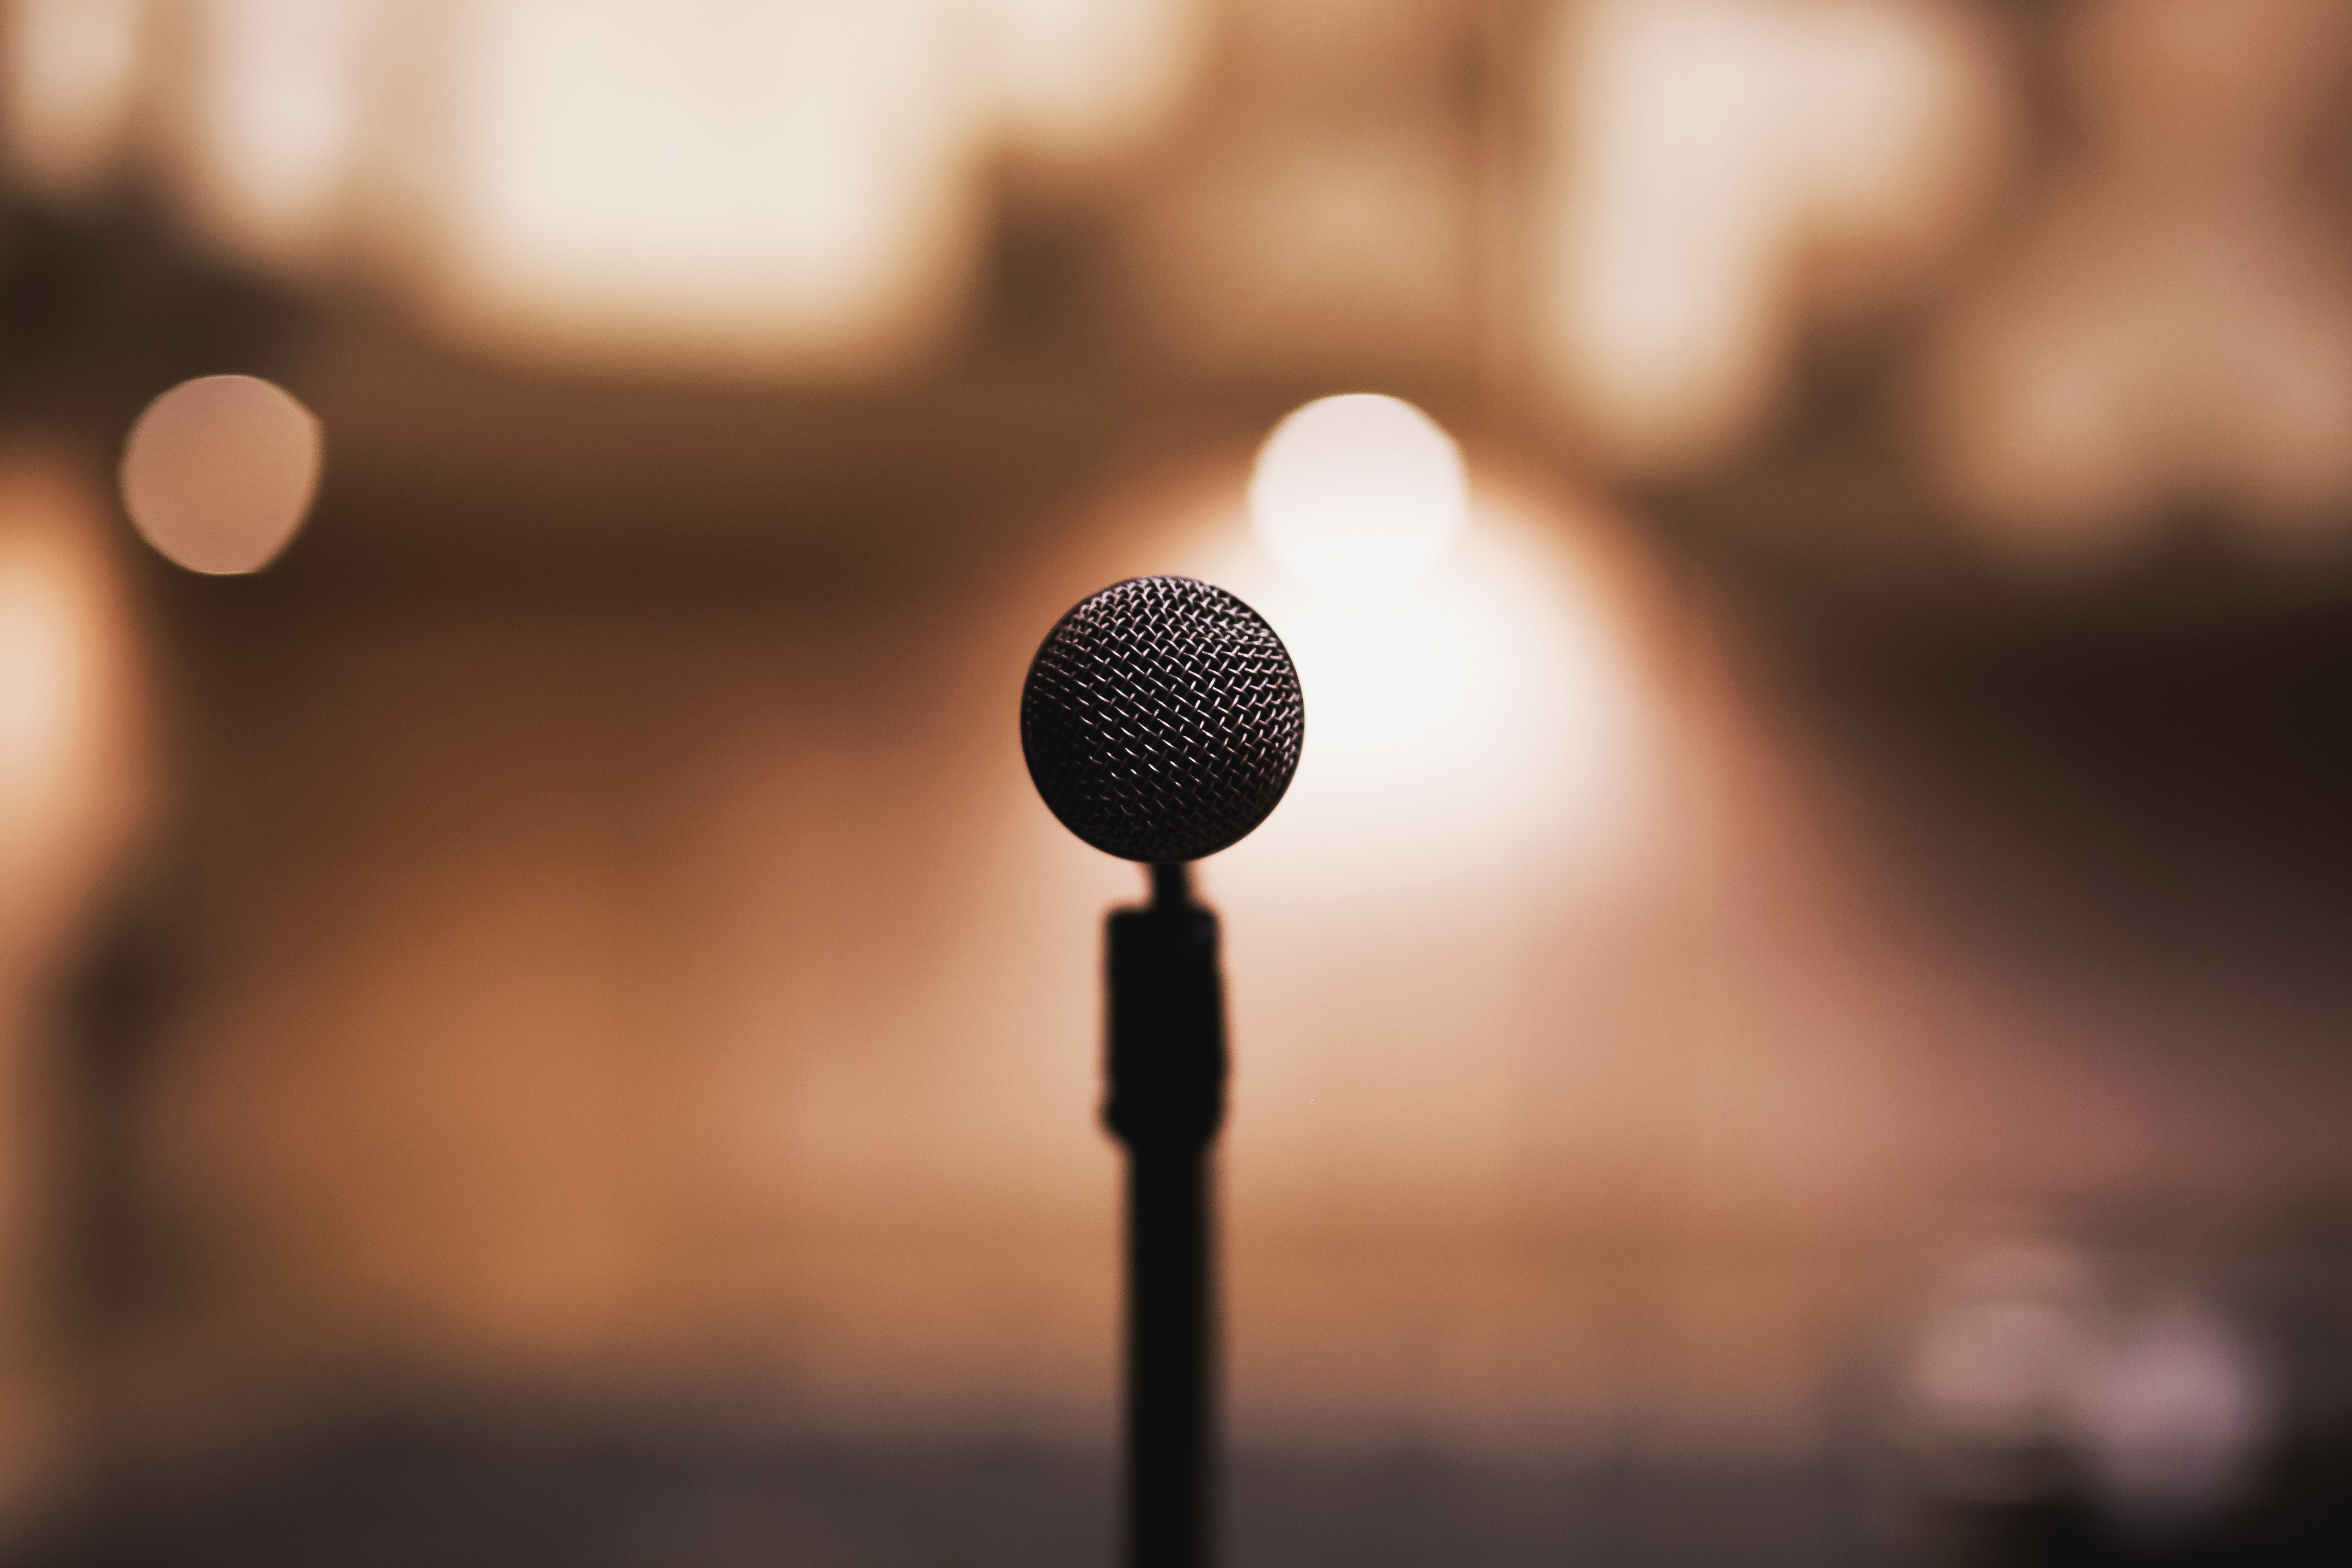 microphone on a microphone stand with blurred theatre in background